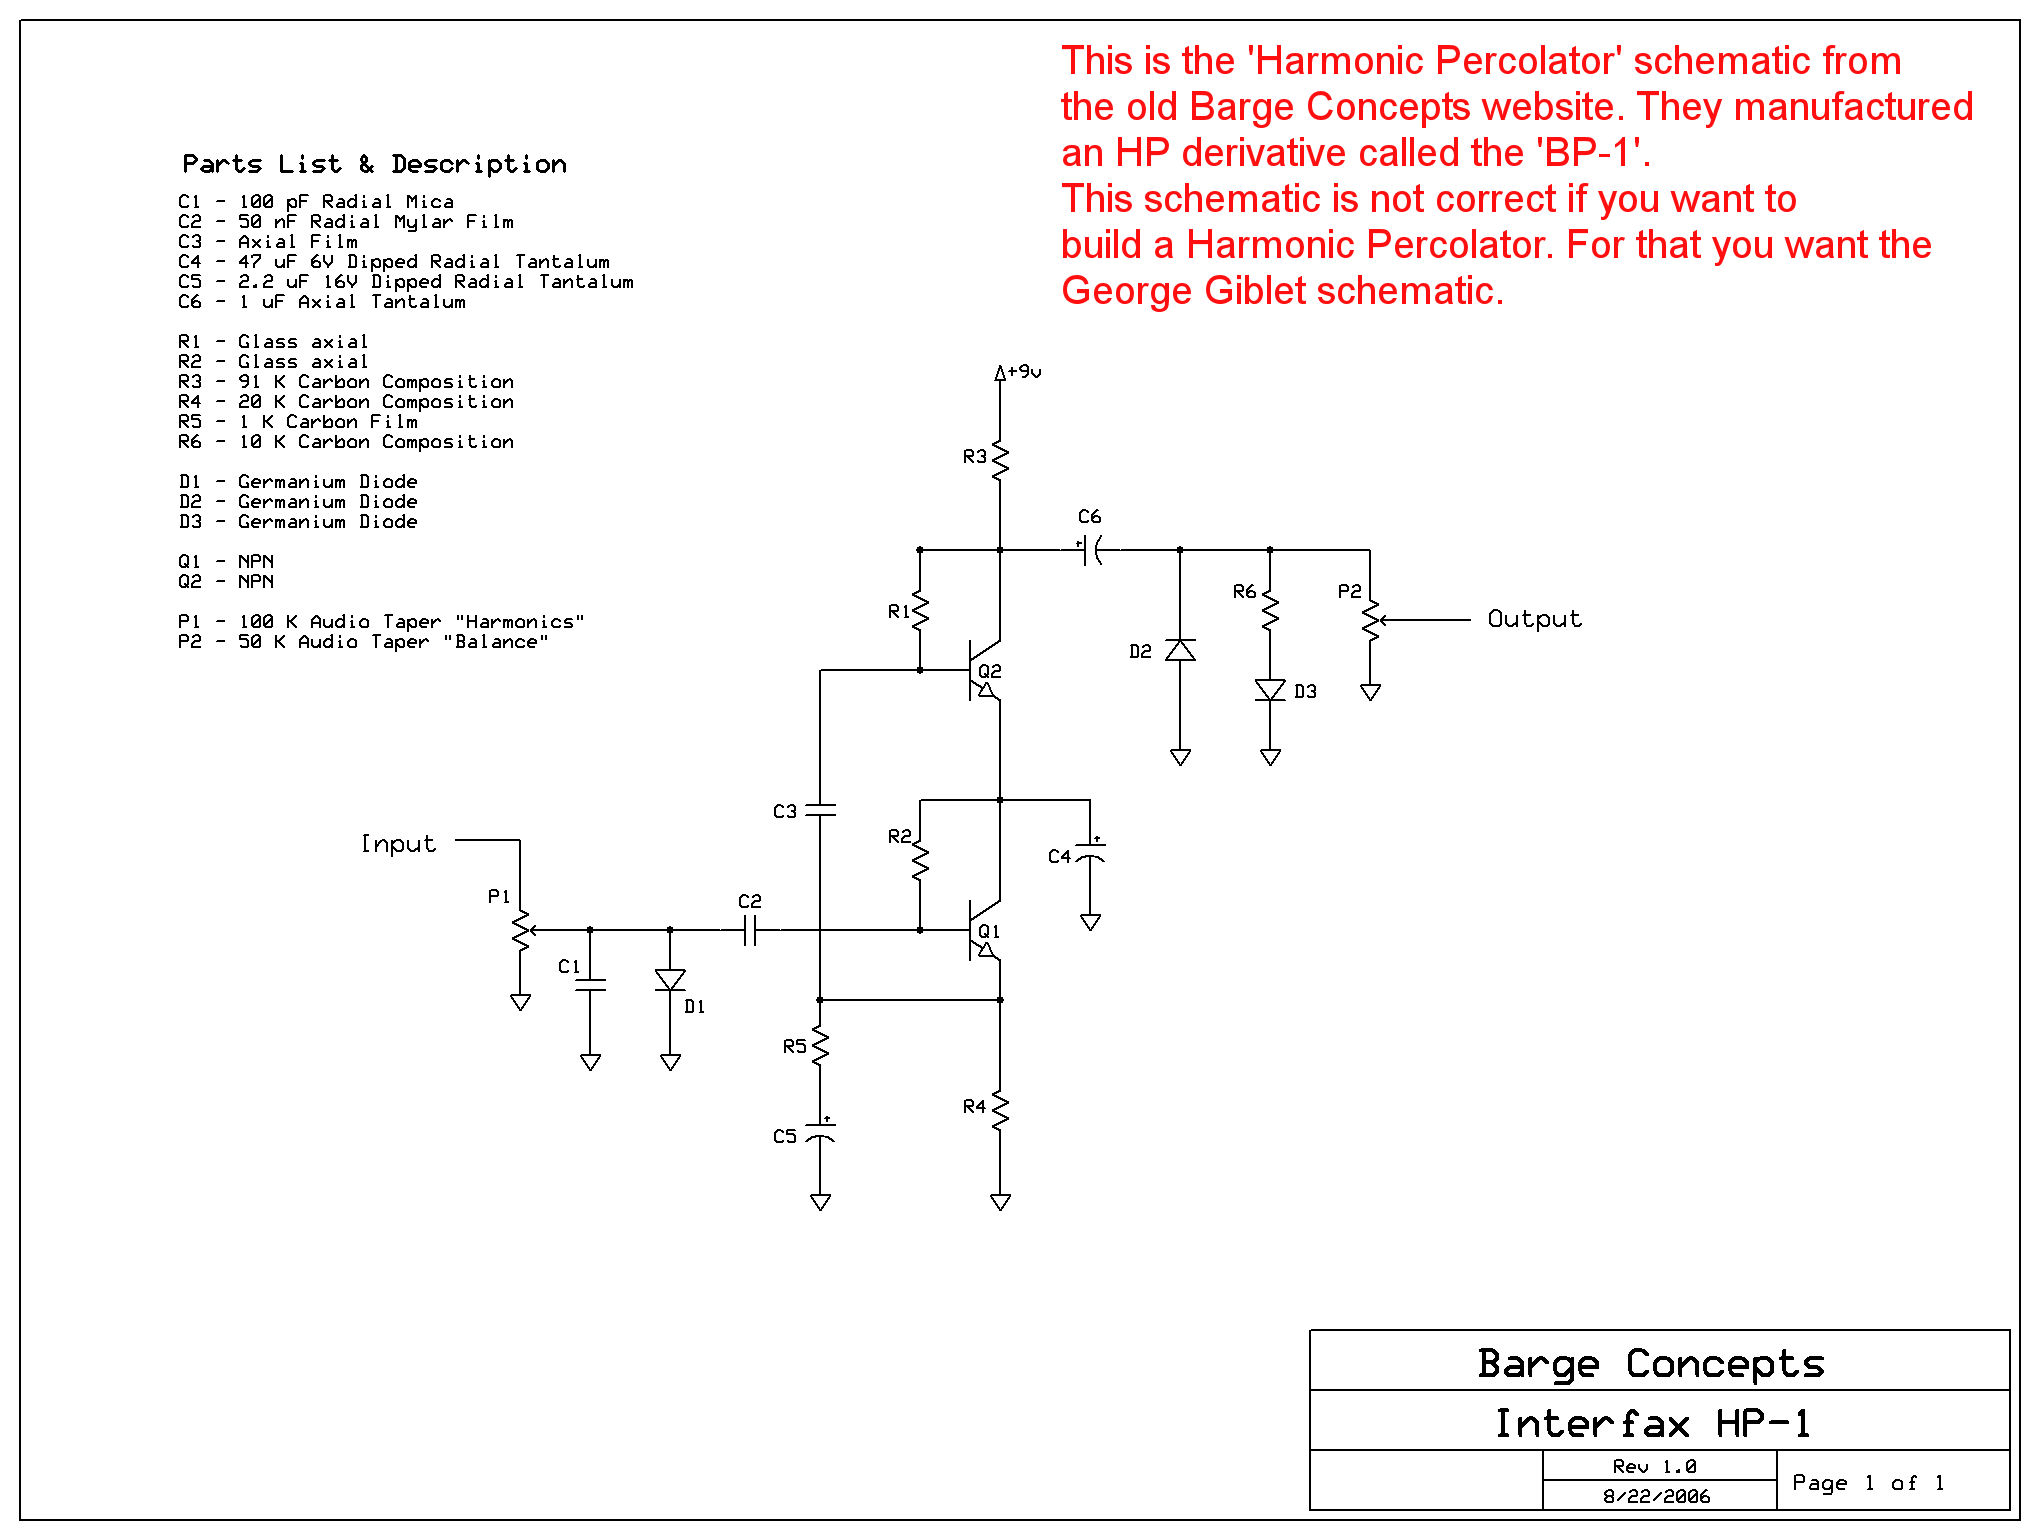 Relay Latching Schematic Automotive Wiring Diagram Circuit Barge Concepts Harmonic Percolator Fredric Latch Self